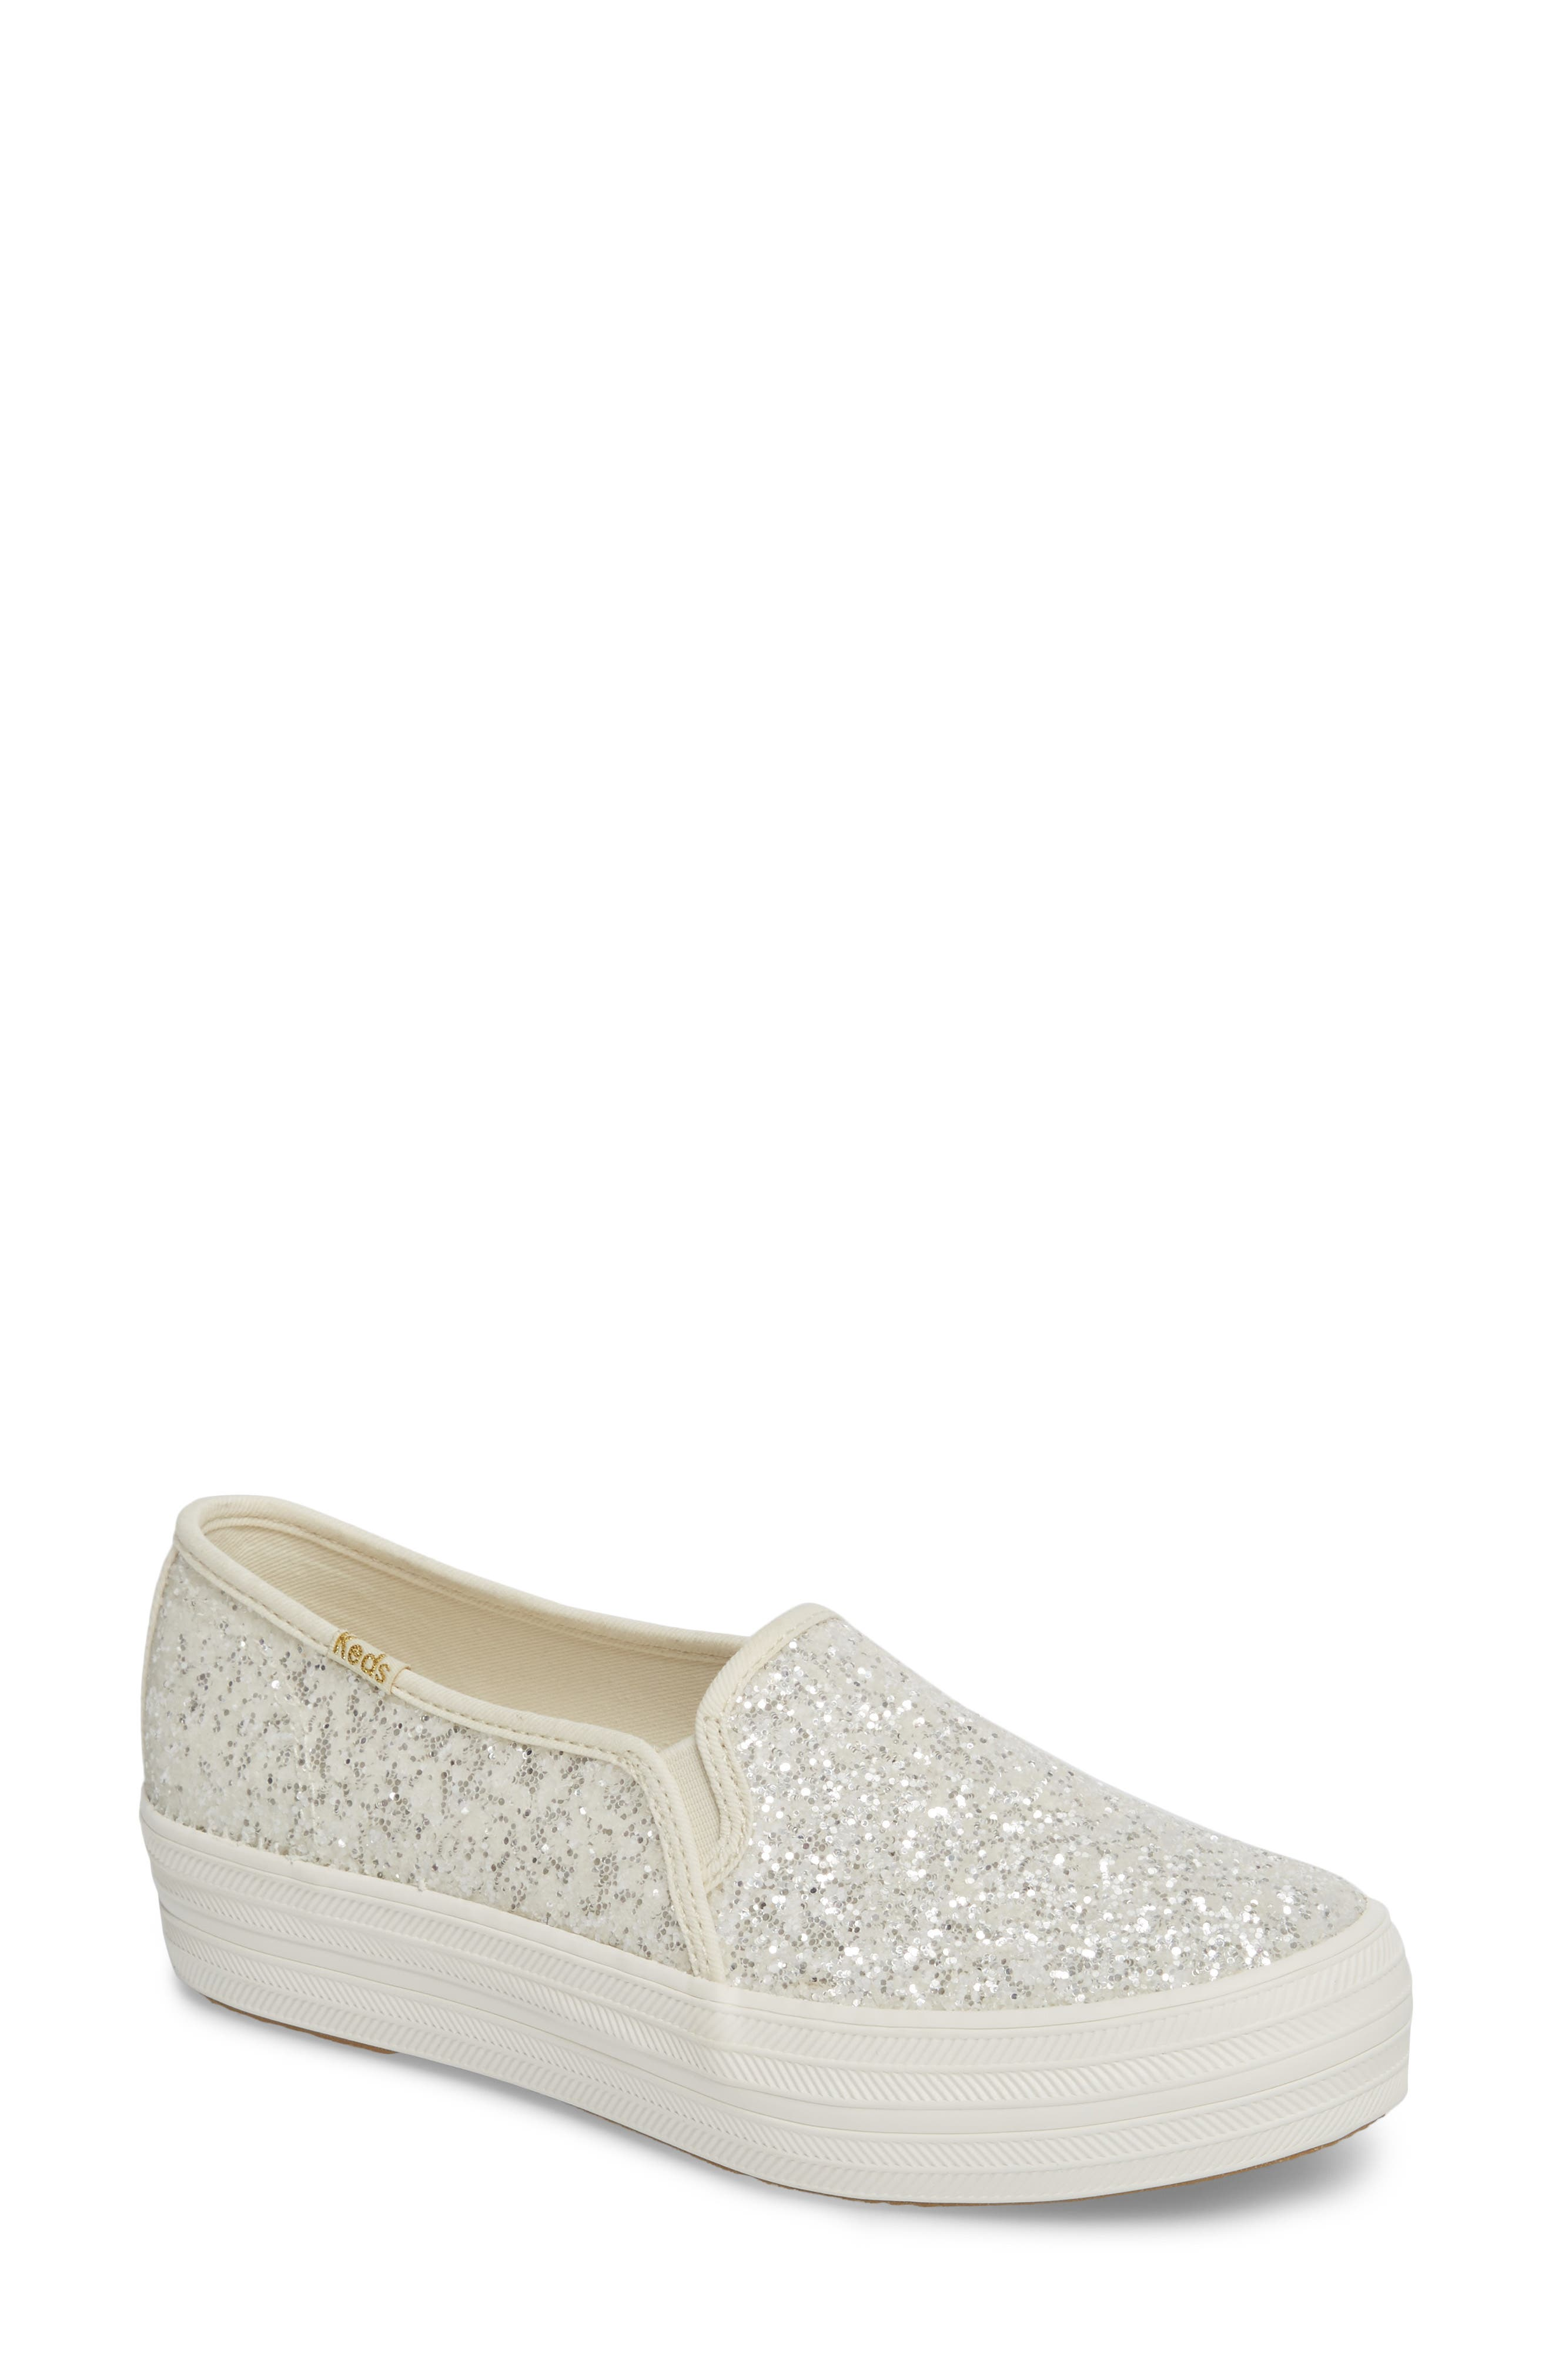 a1f7f6089f3e1 Keds For Kate Spade New York Triple Decker Glitter Slip-On Sneaker, Ivory